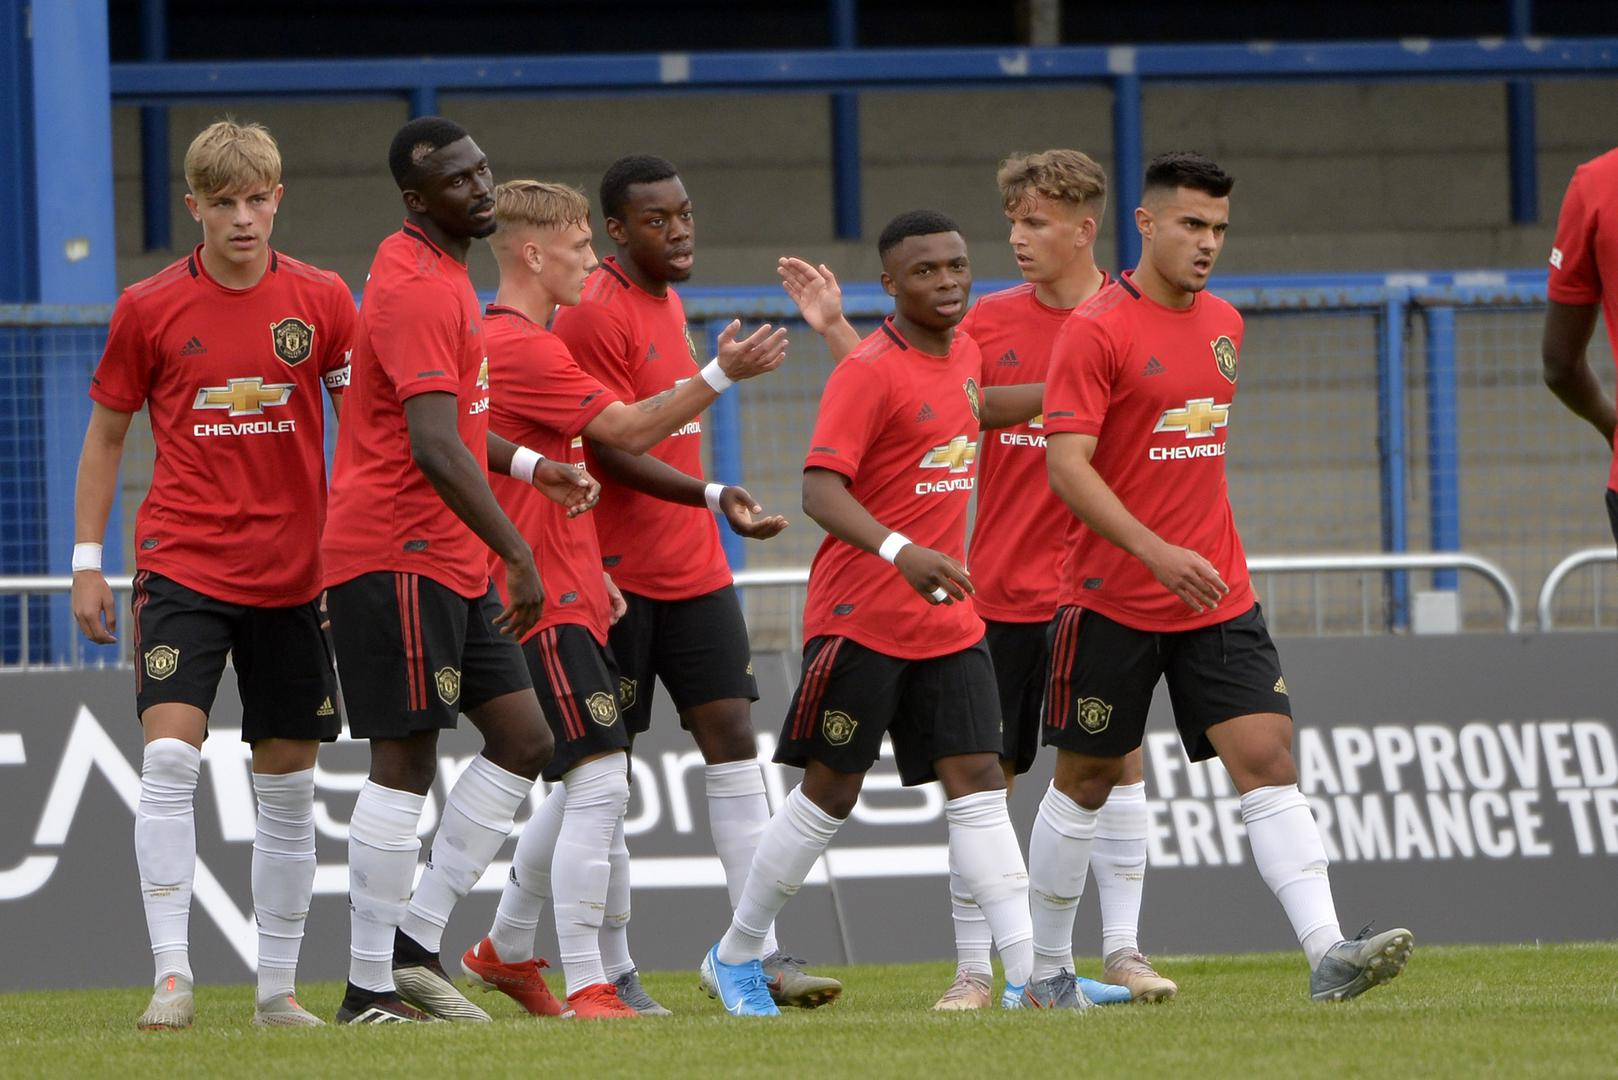 United youngsters celebrate scoring a goal against Rangers in the SuperCupNI.